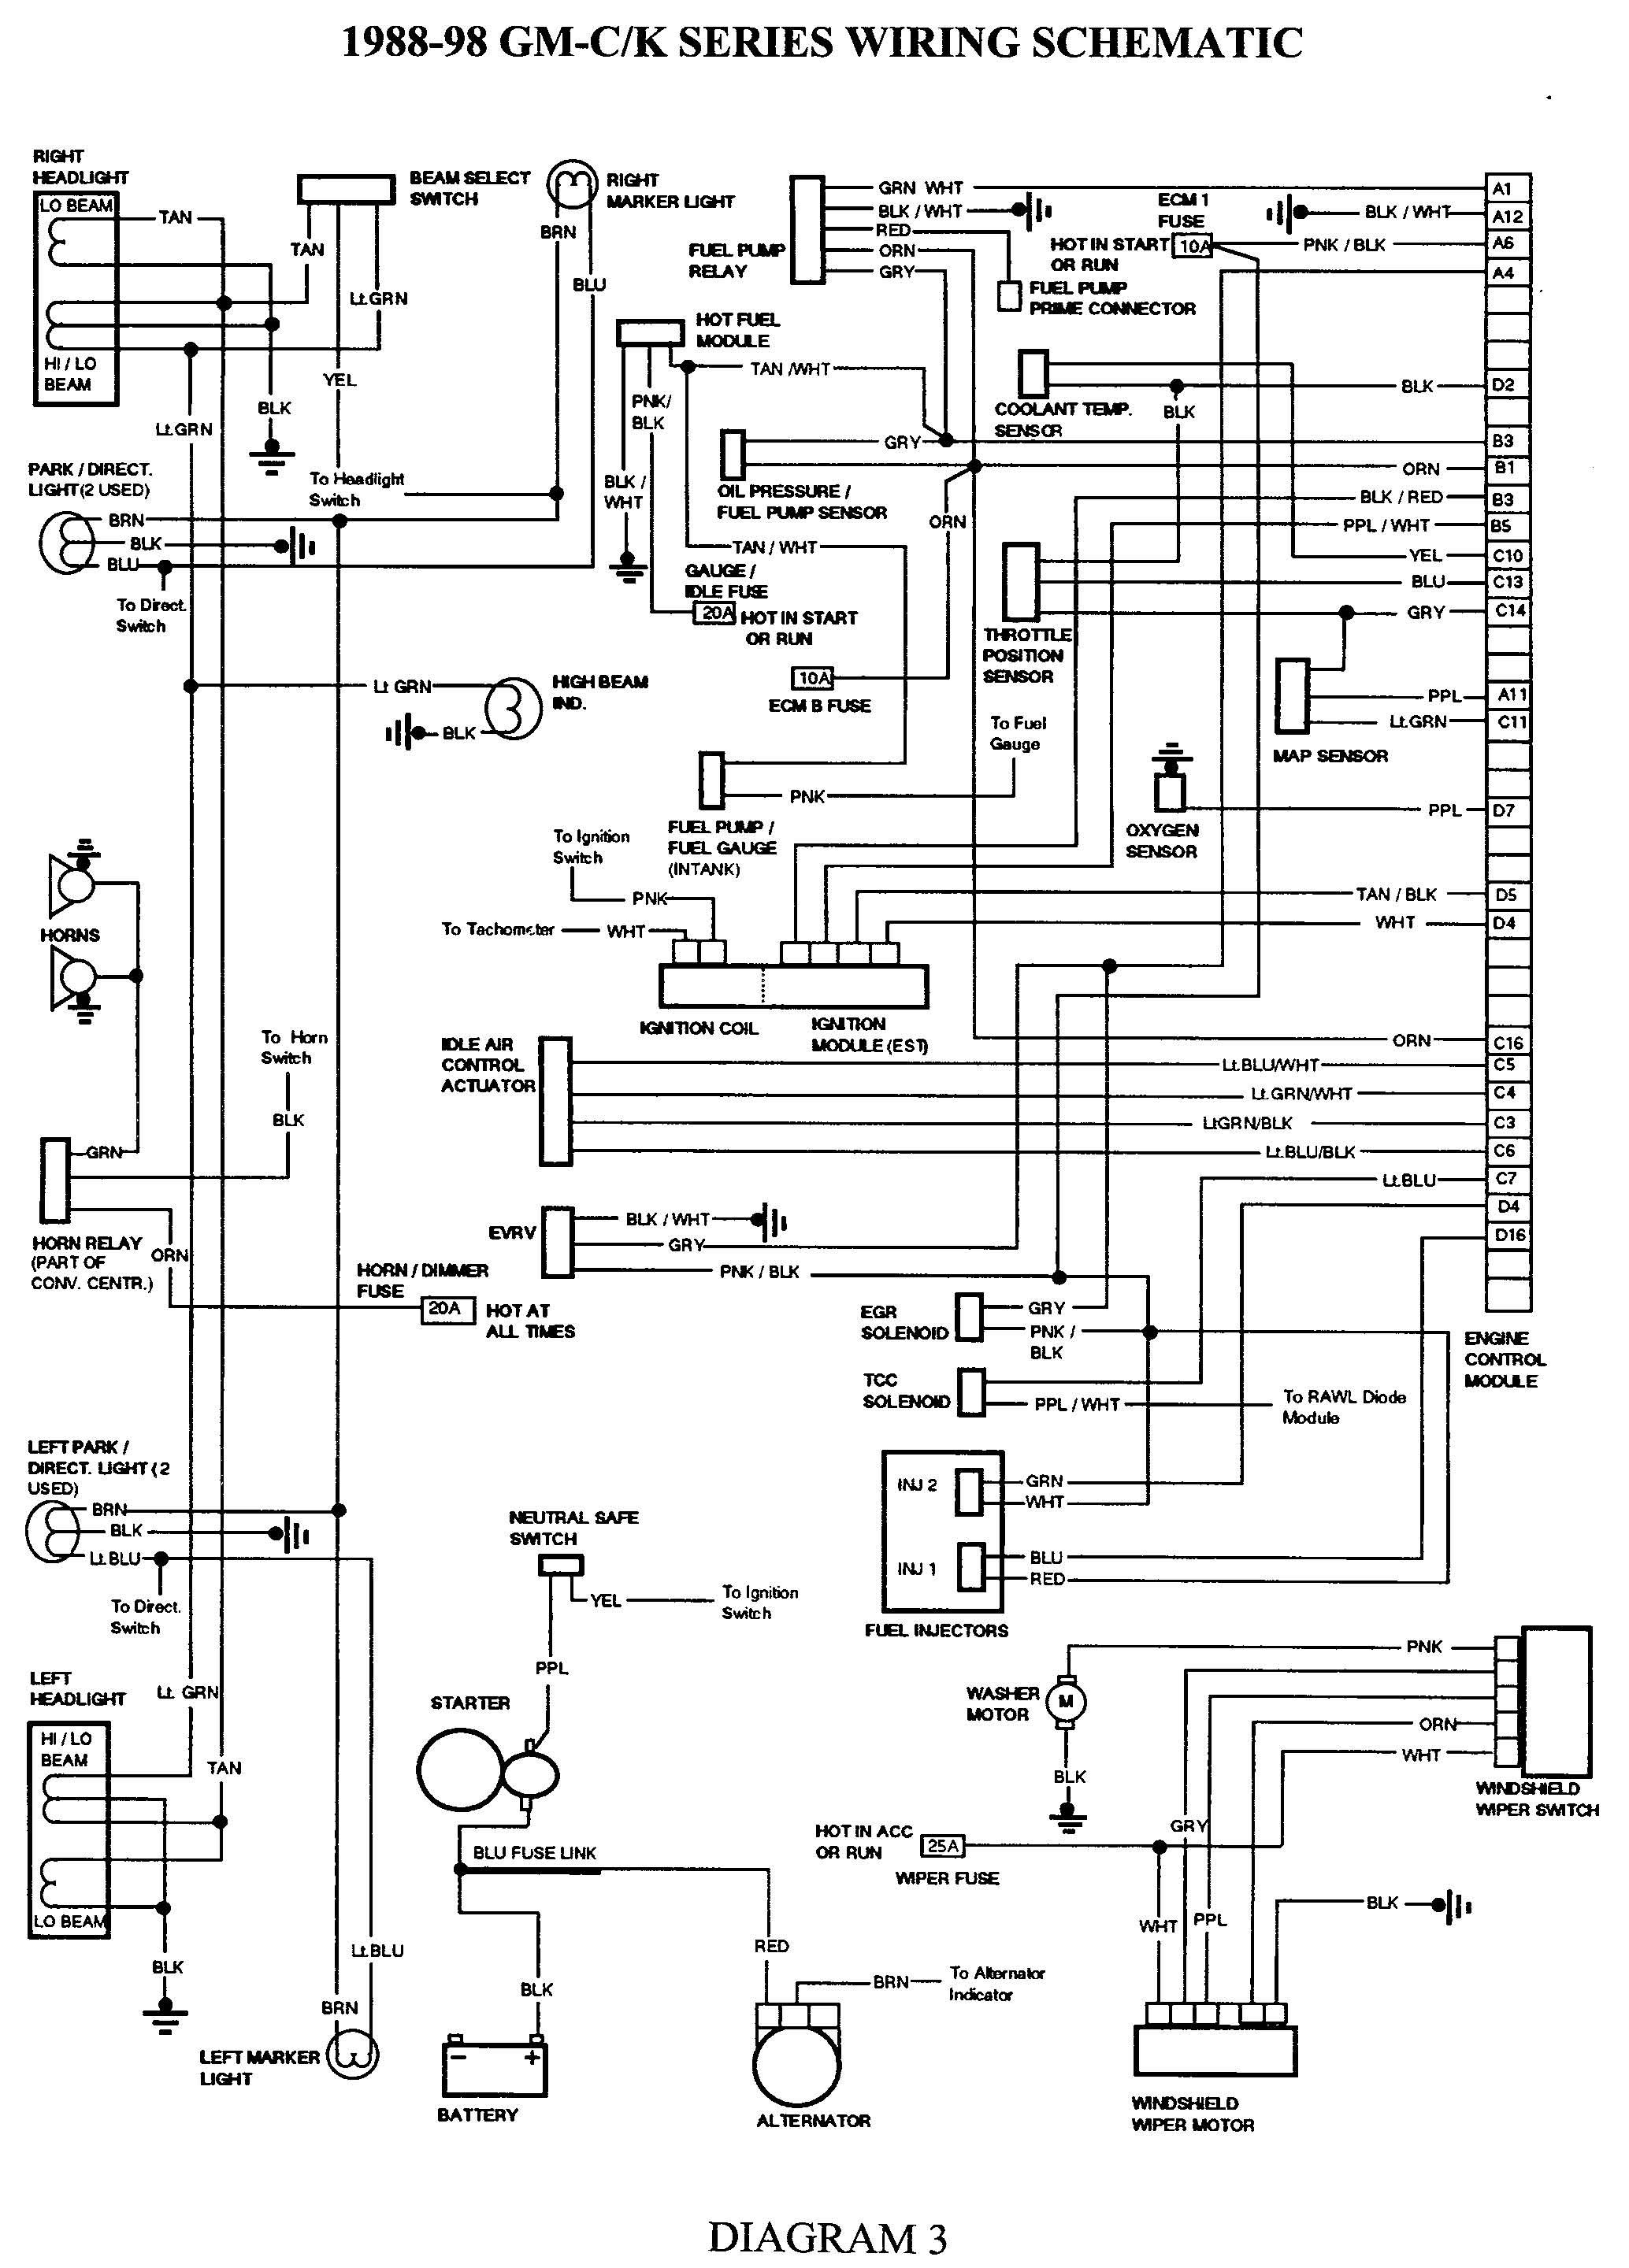 gm generator wiring schematic simple wiring diagrams ac generator wiring diagram gm wiring diagram wiring diagram [ 2068 x 2880 Pixel ]